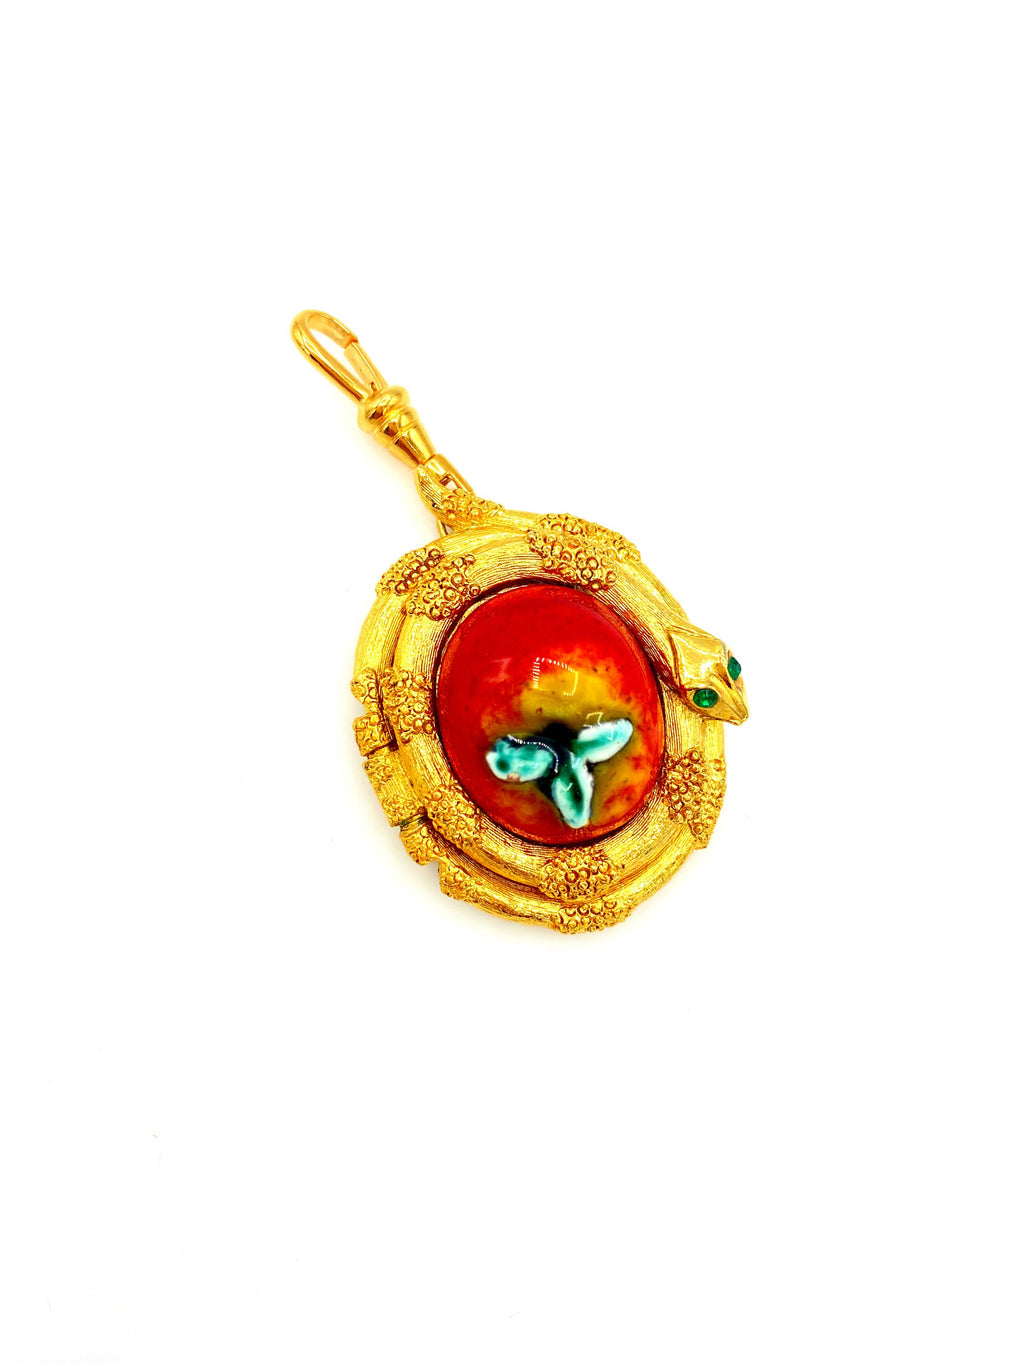 Gold Snake & Enamel Apple Locket Charm Swivel Fob Jewelry